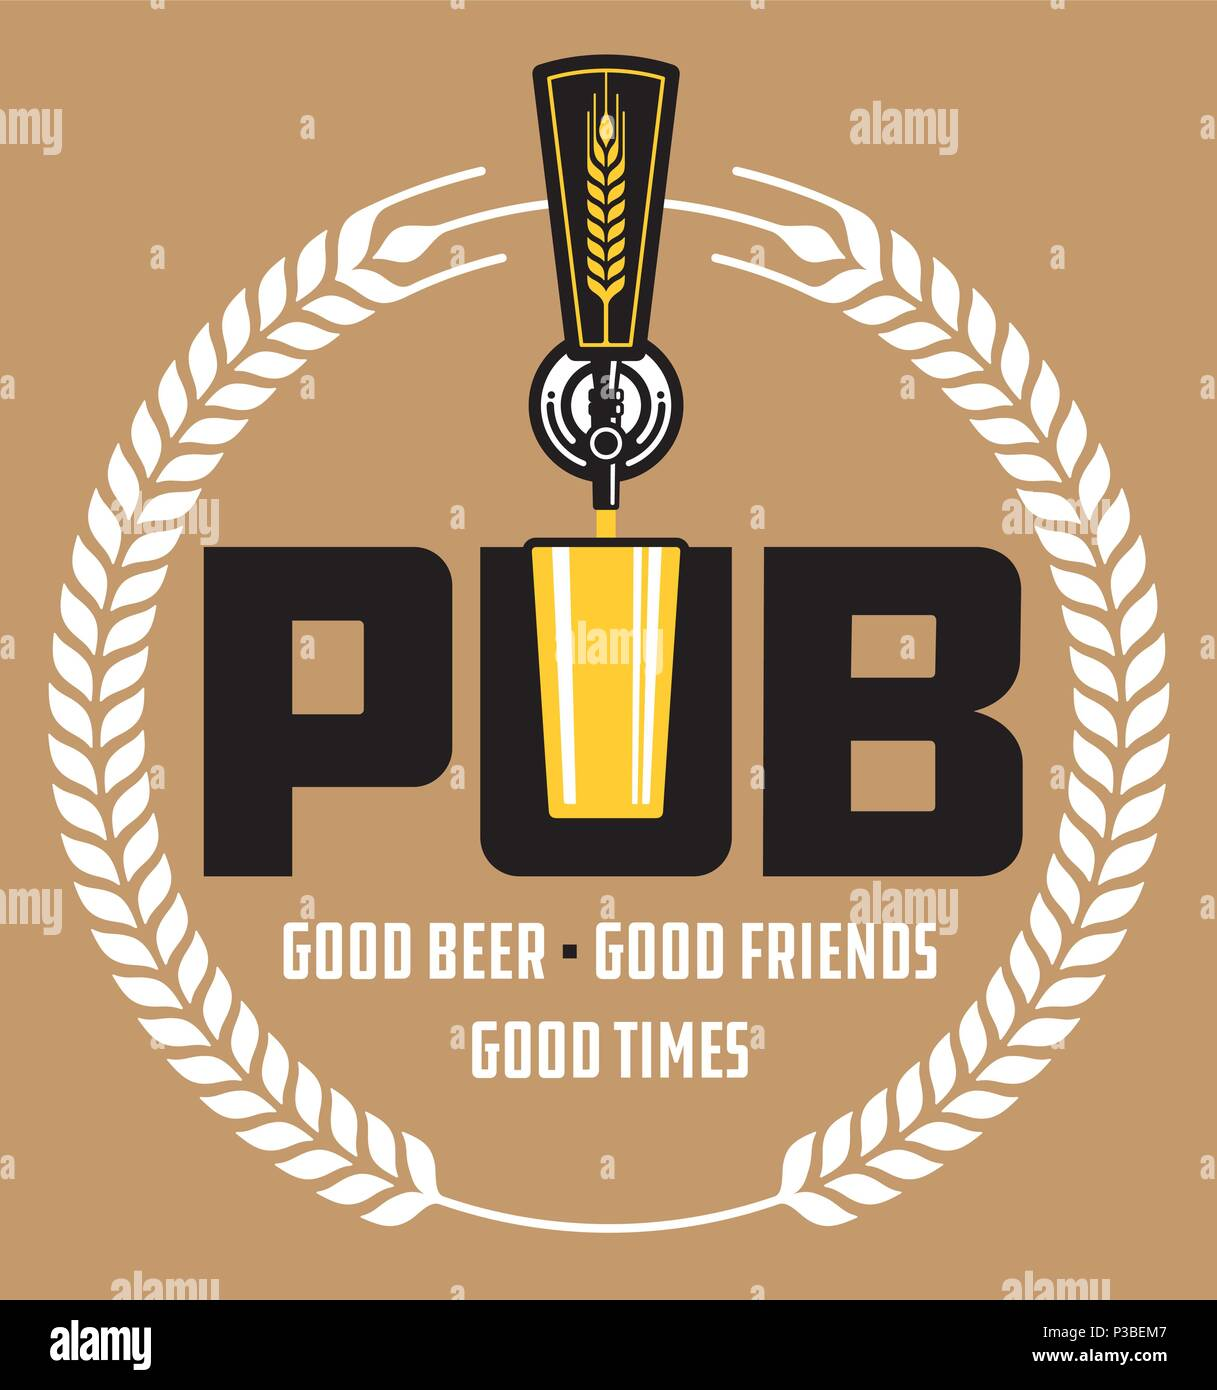 Pub Craft Beer Vector Design. Vector illustration of beer tap and pint glass making pub or brew pub badge. - Stock Vector